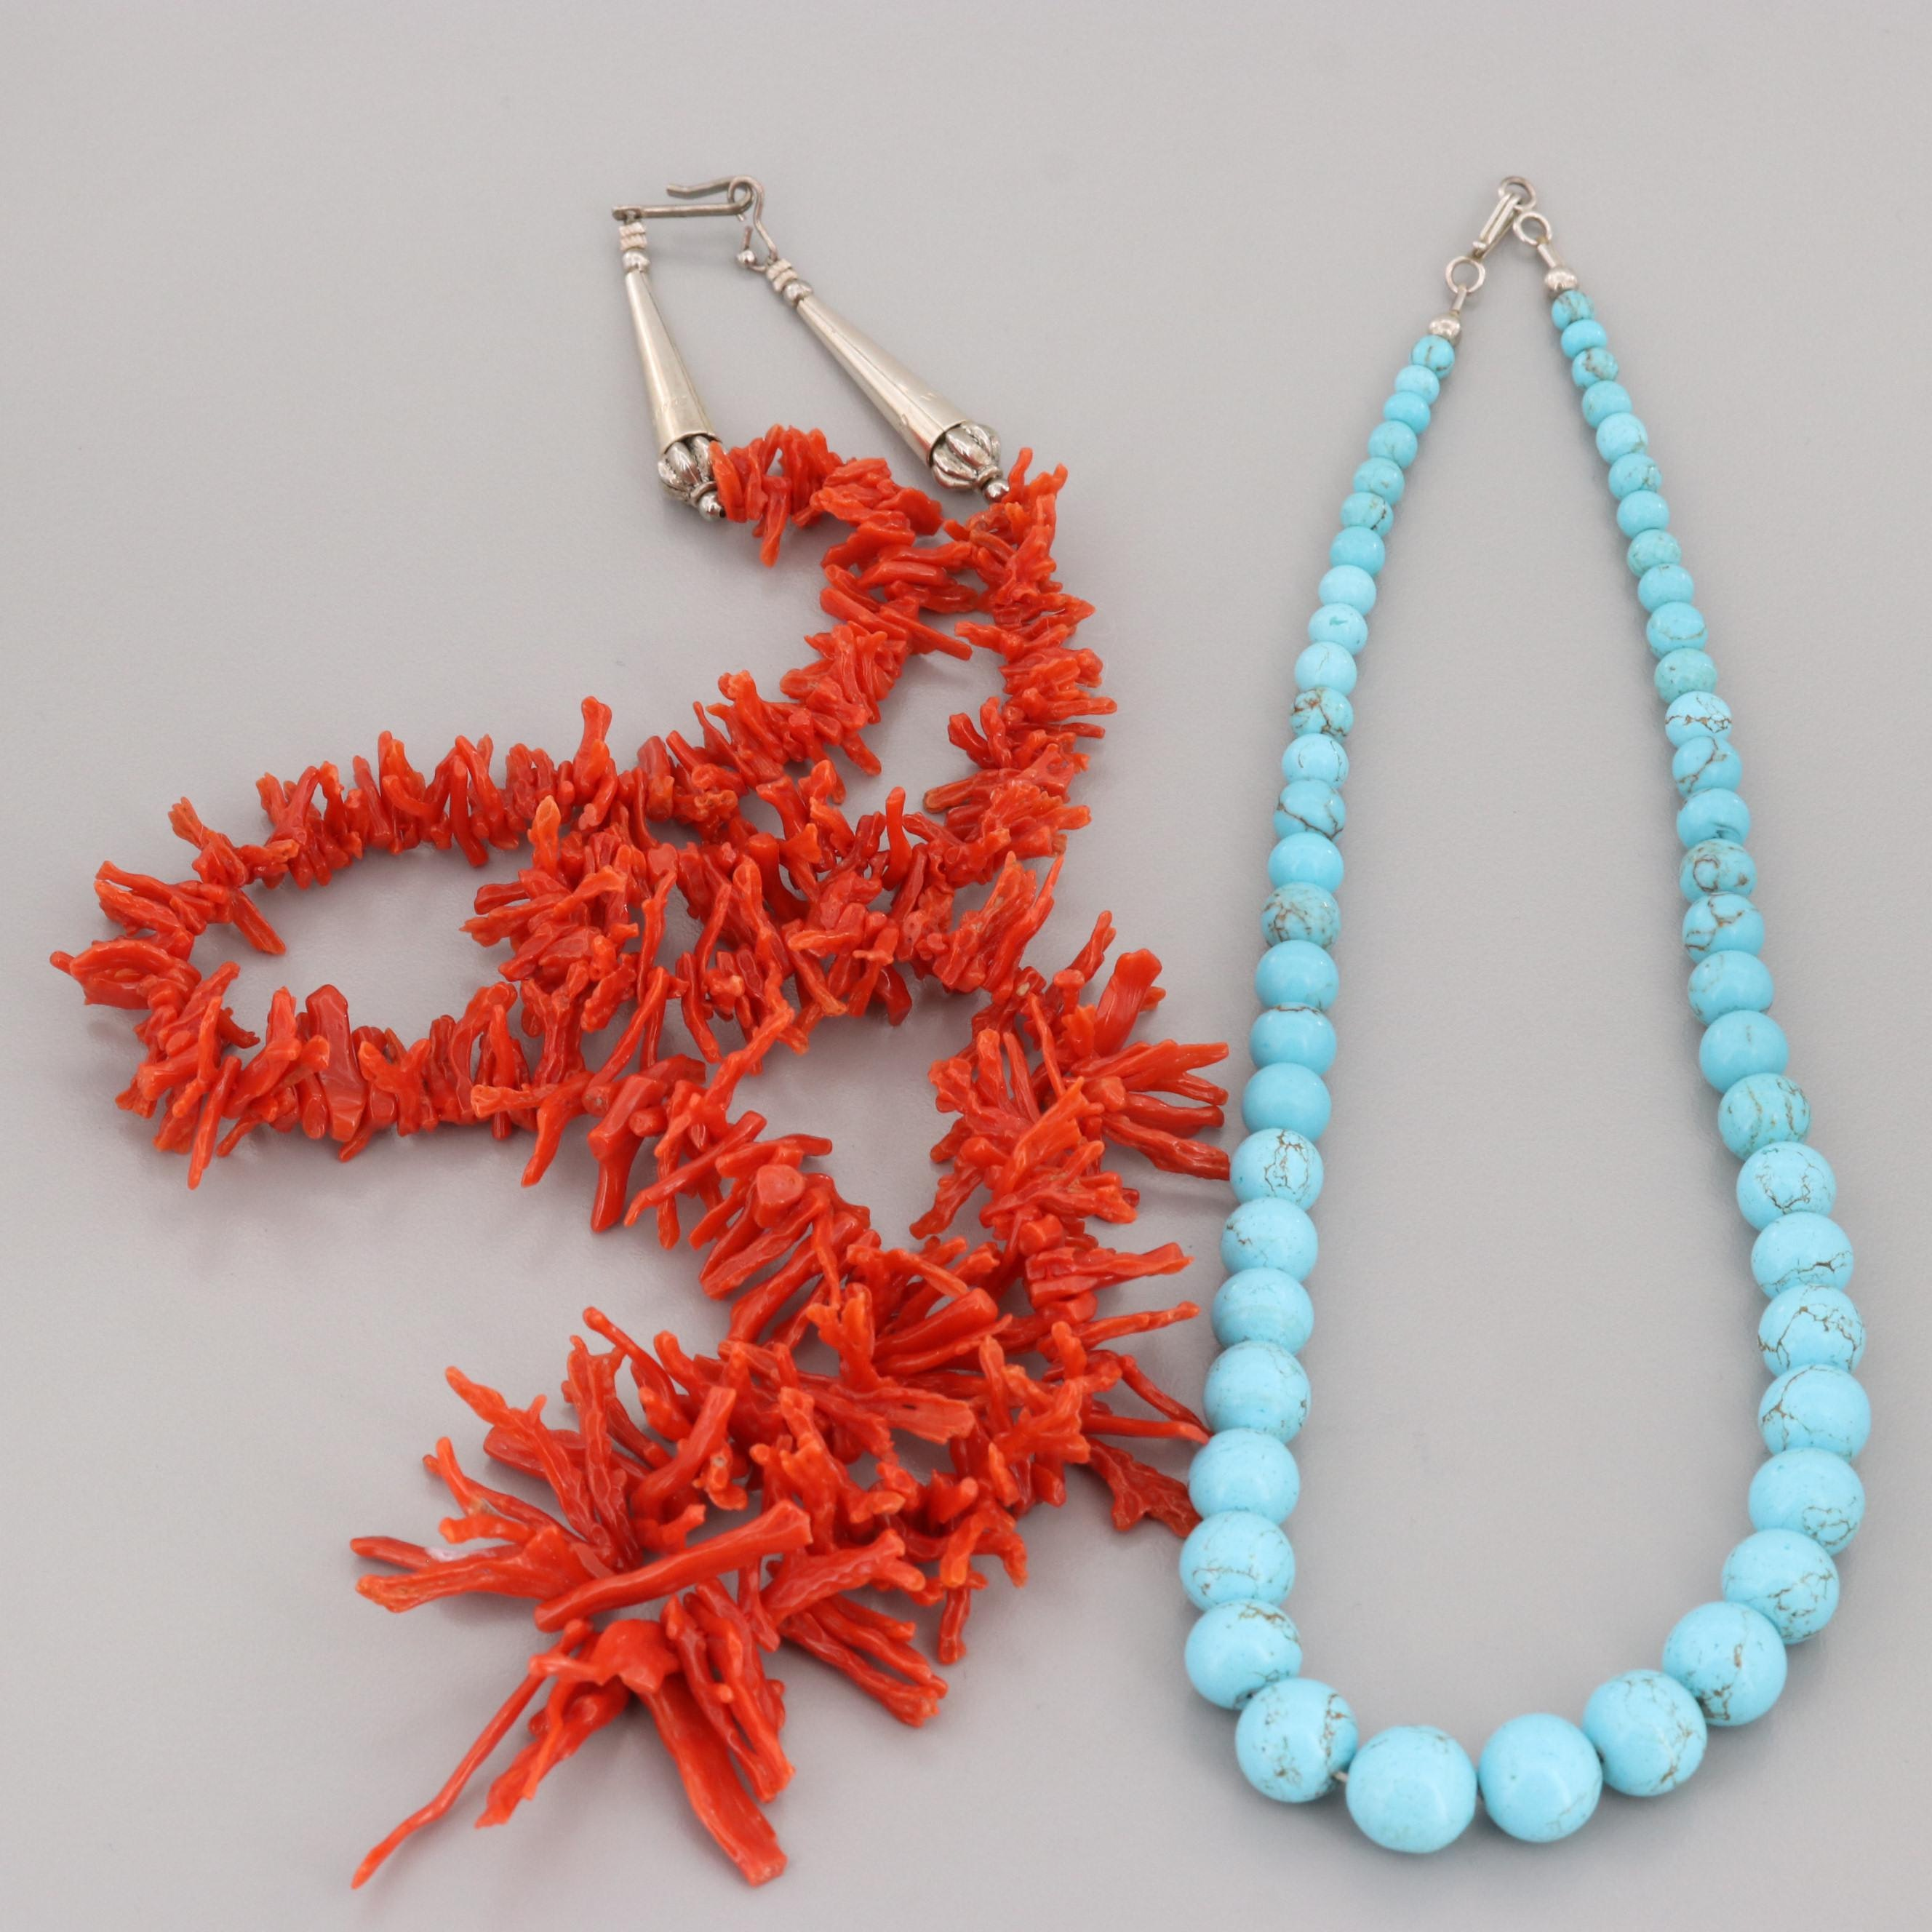 Sterling Silver Howlite Graduated Beaded Necklace and Silver Tone Coral Necklace